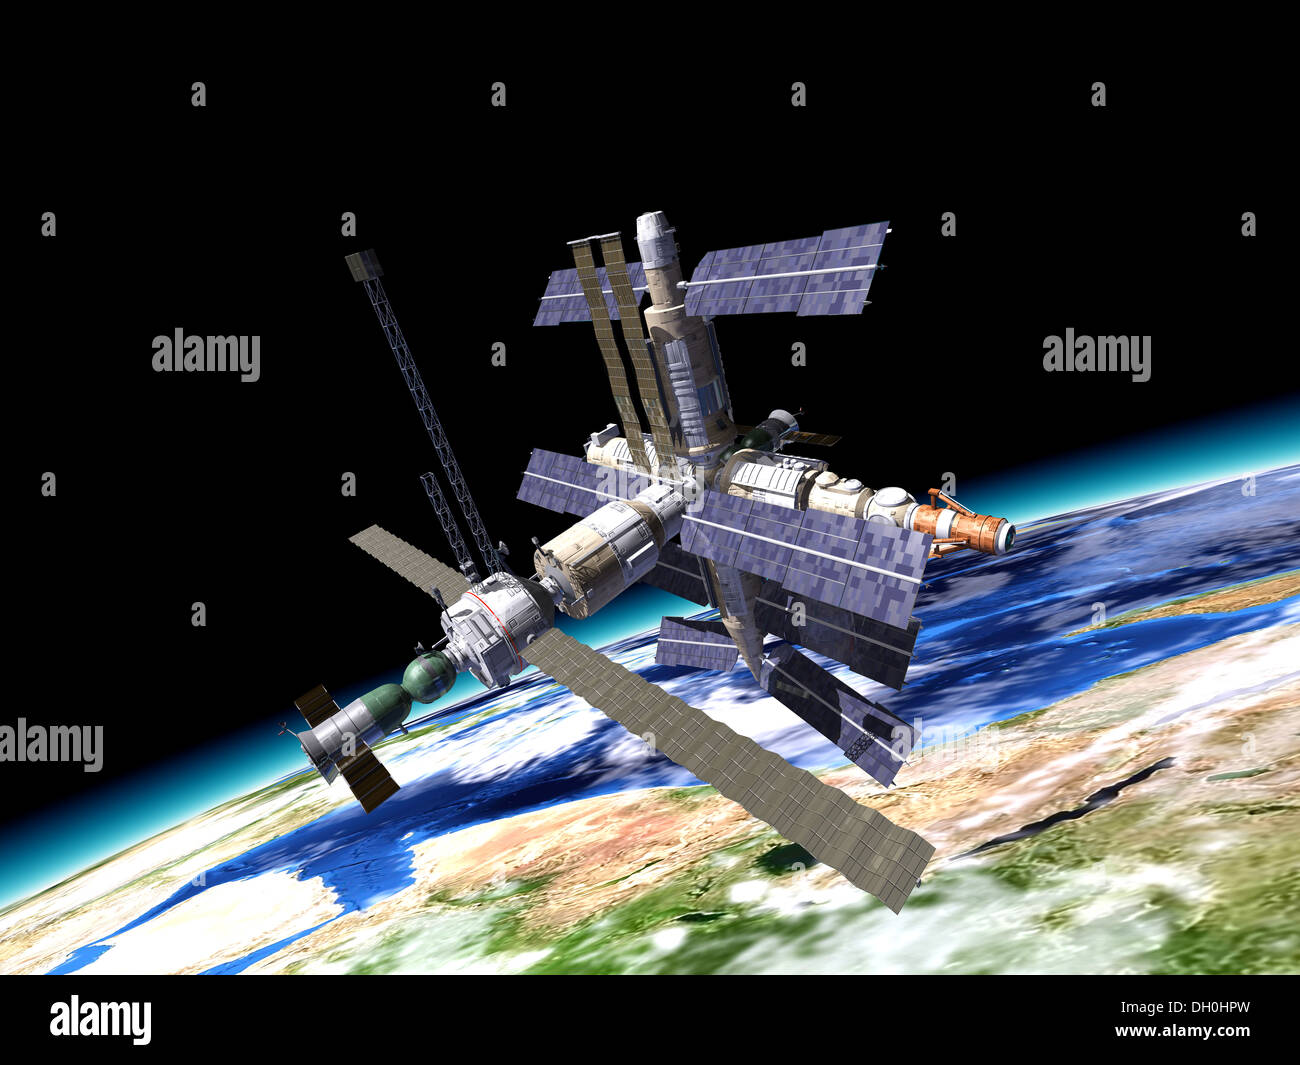 Mir Russian Space Station In Orbit On The Earth With Close Up